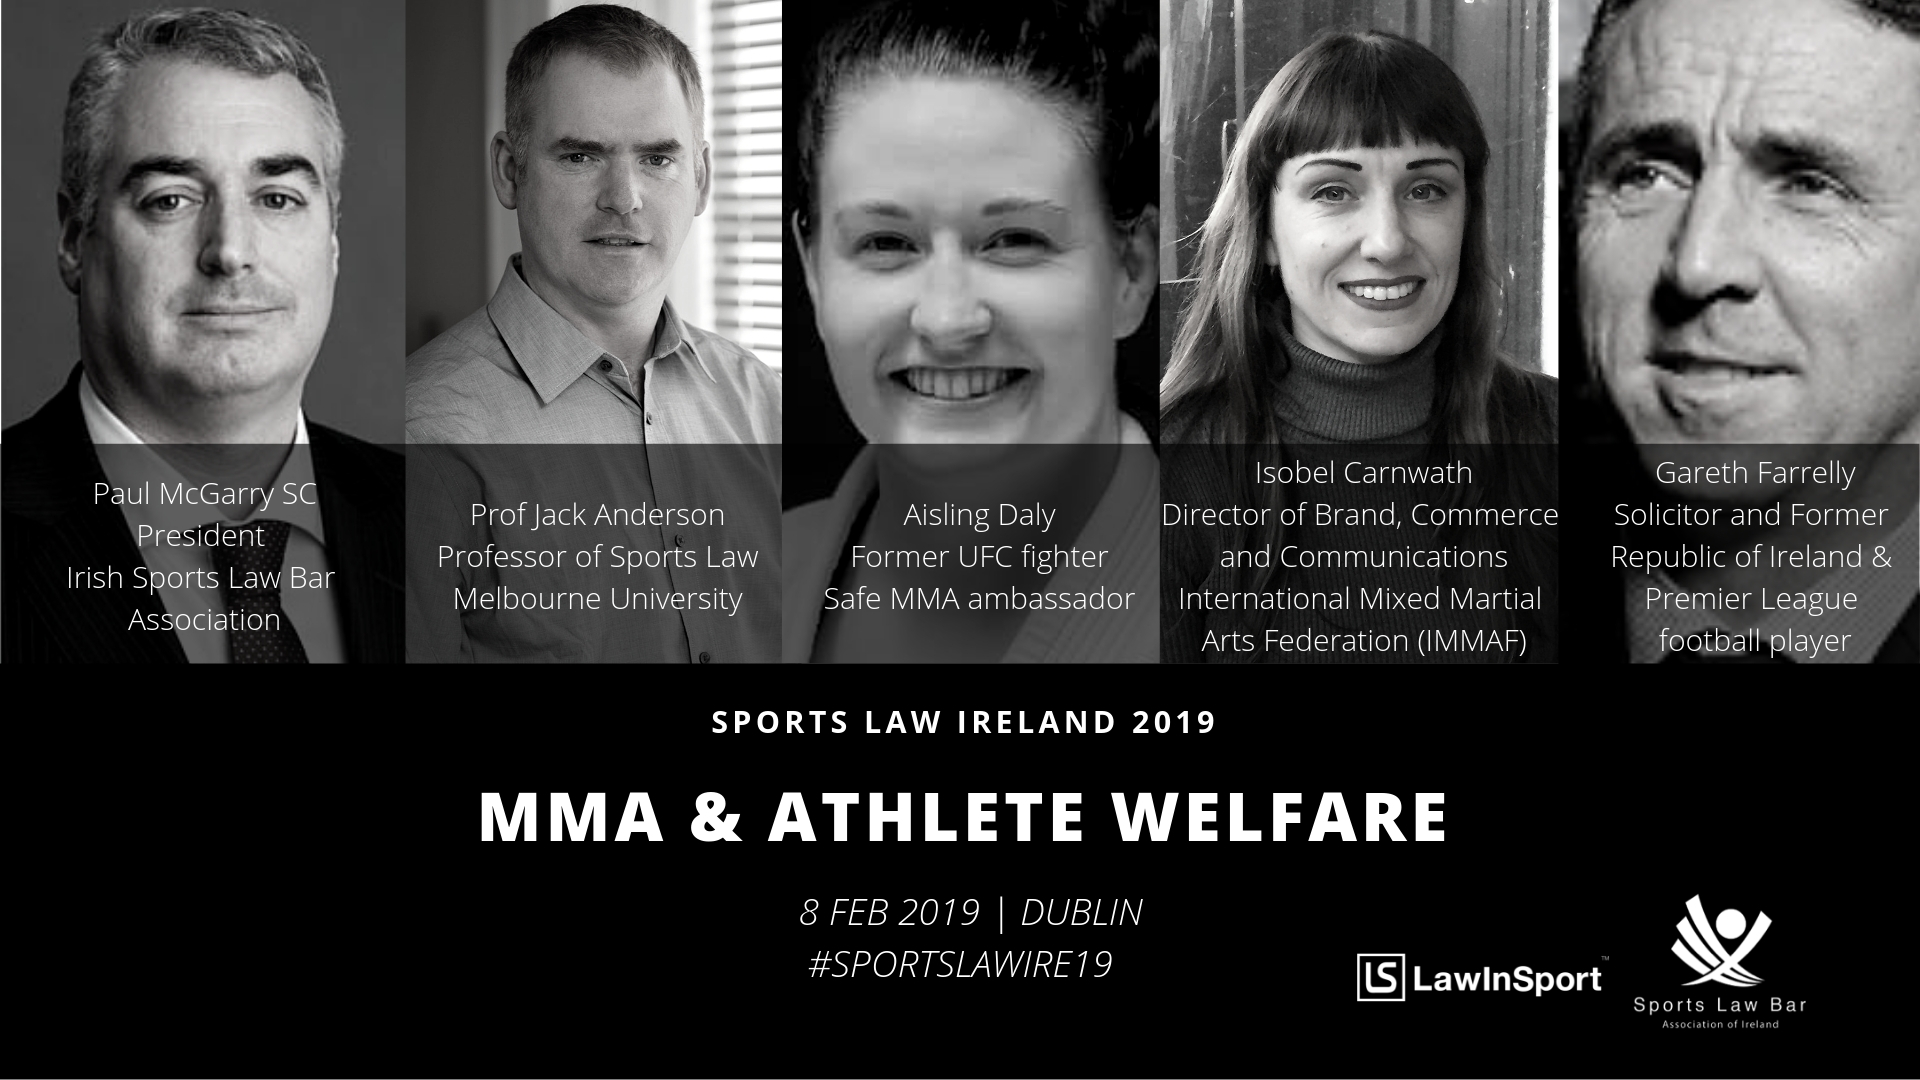 Athlete Welfare Panel Speakers at Sports Law Ireland 19